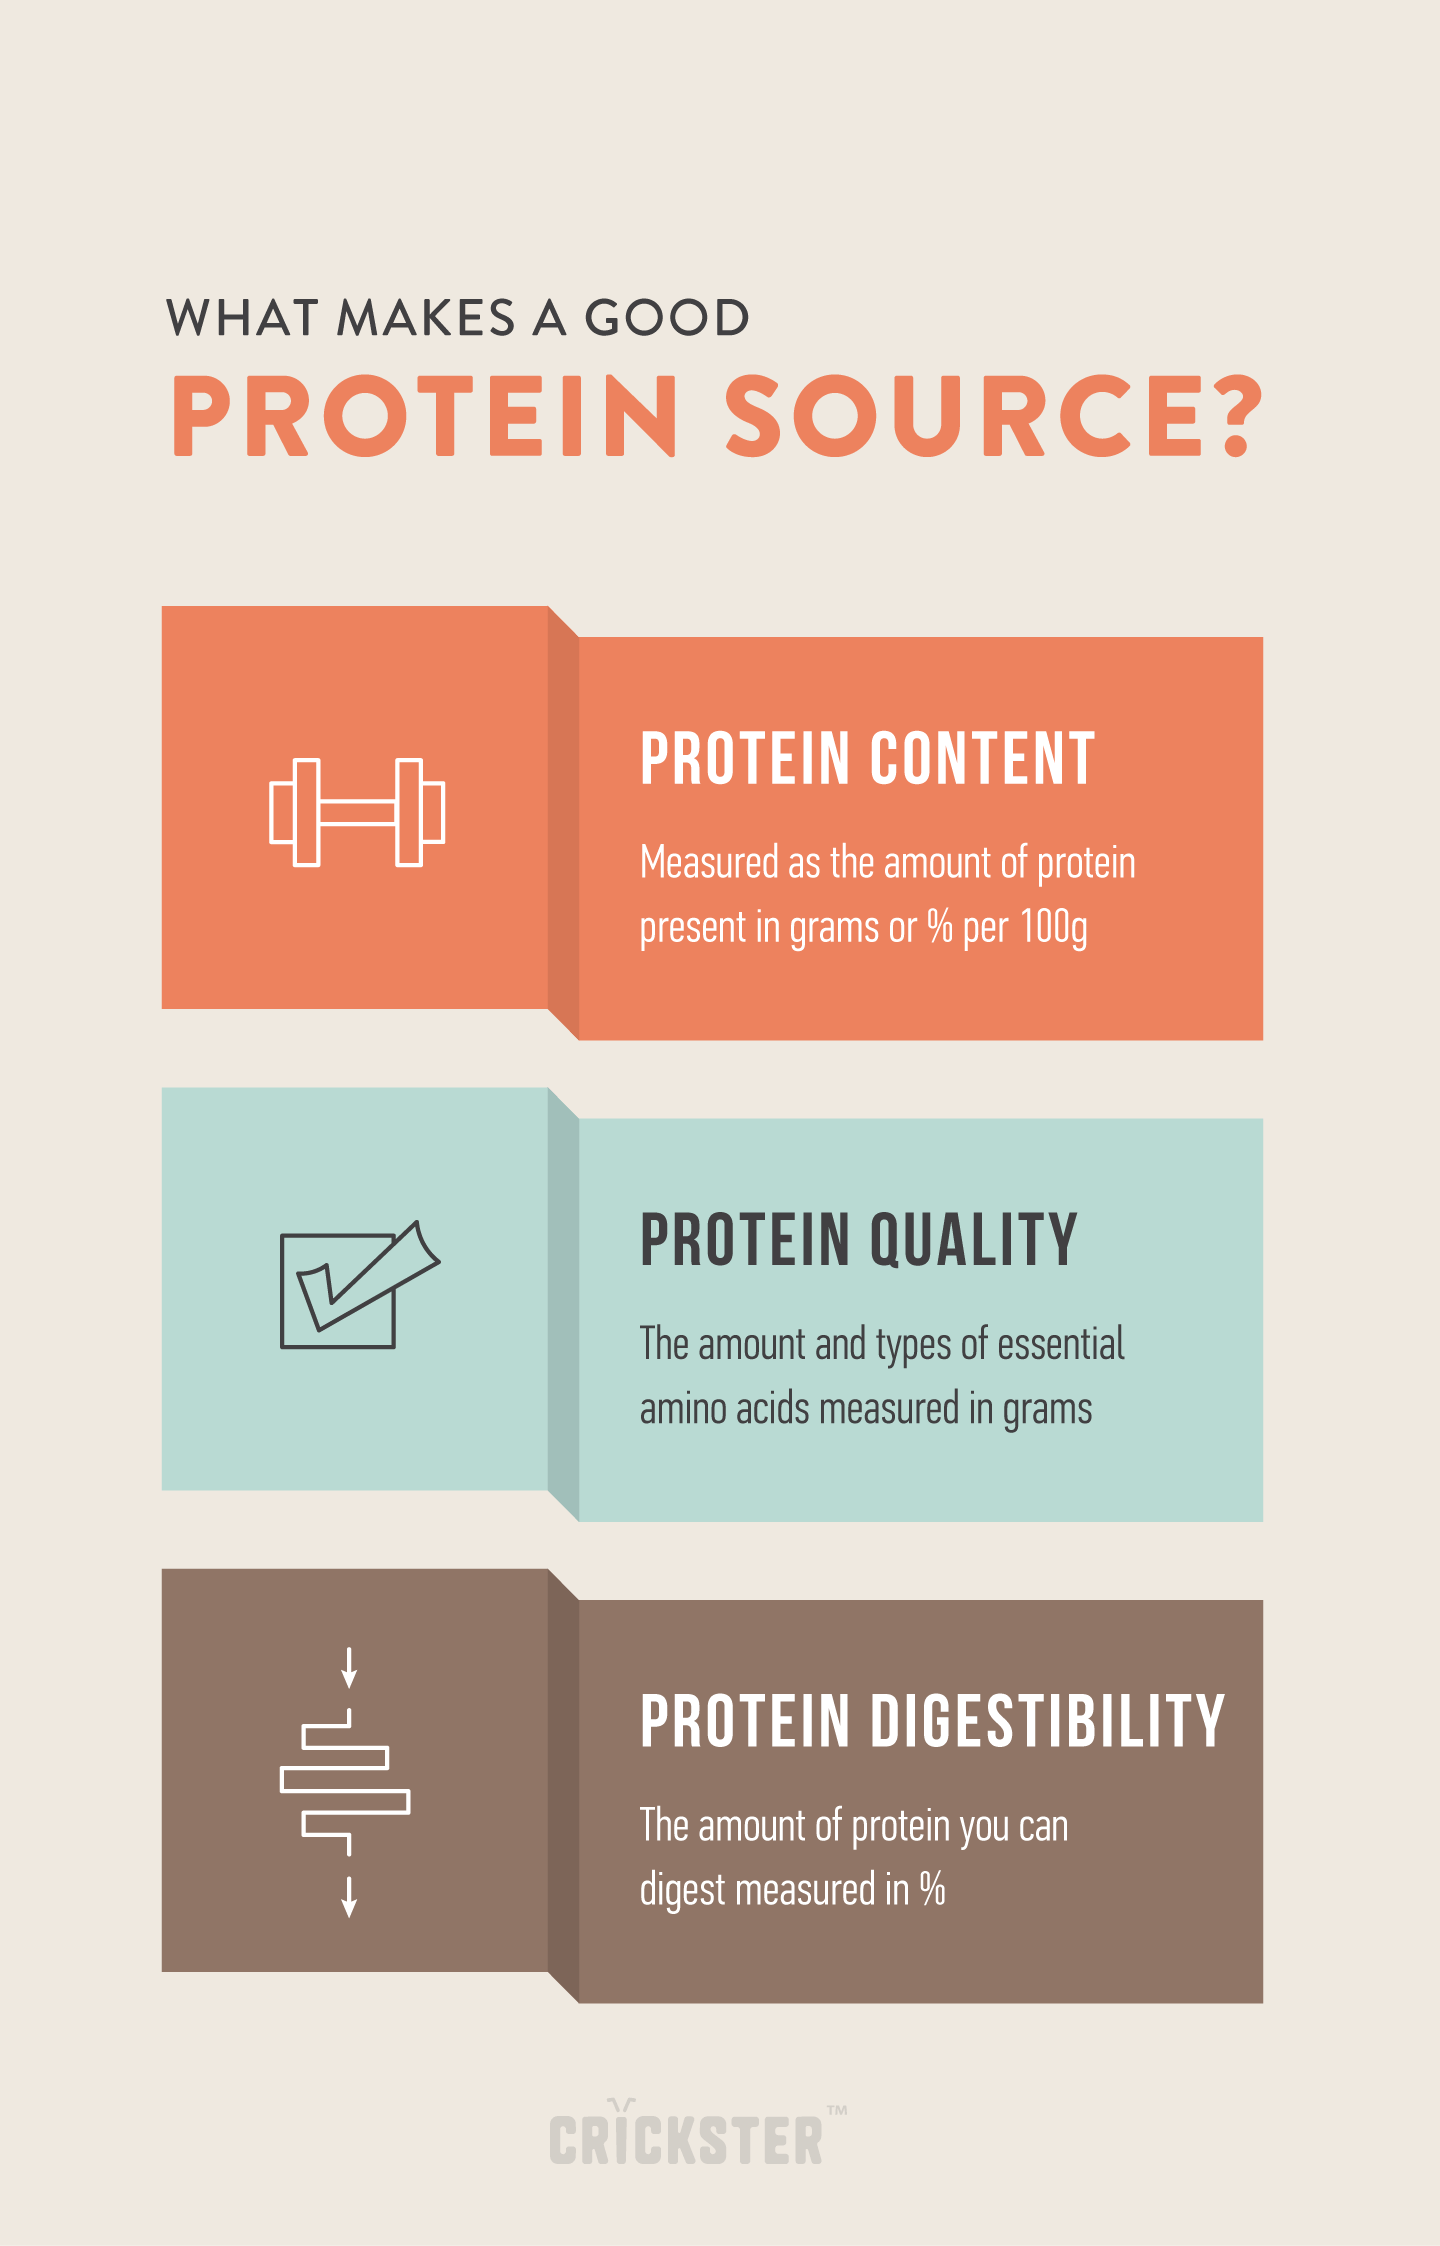 Infographic: a protein source is determined by protein content, quality and digestibility